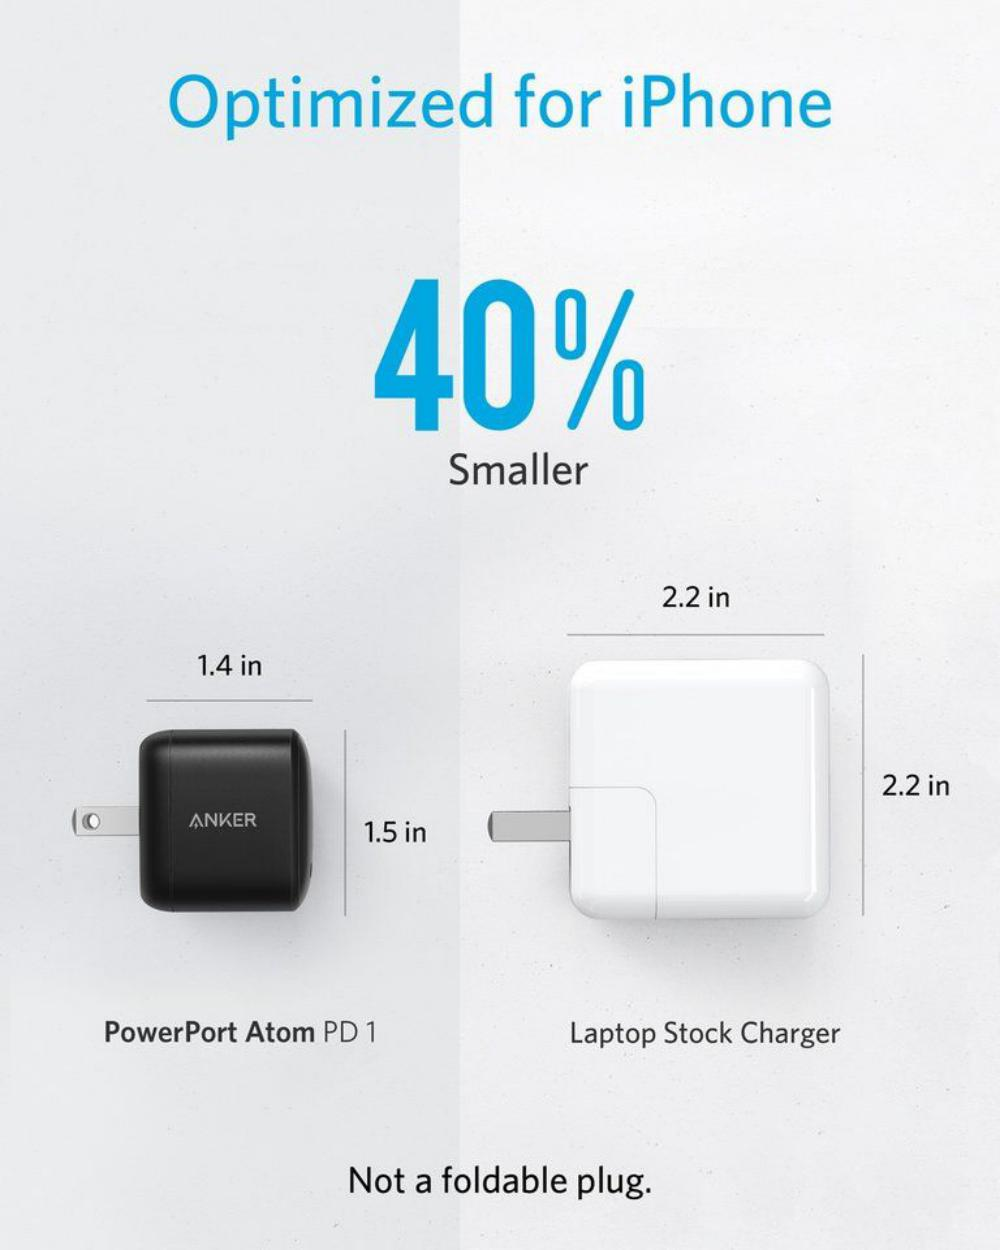 Anker 30w Compact Usb C Wall Charger With Power Delivery Powerport Atom Pd 1 (2)